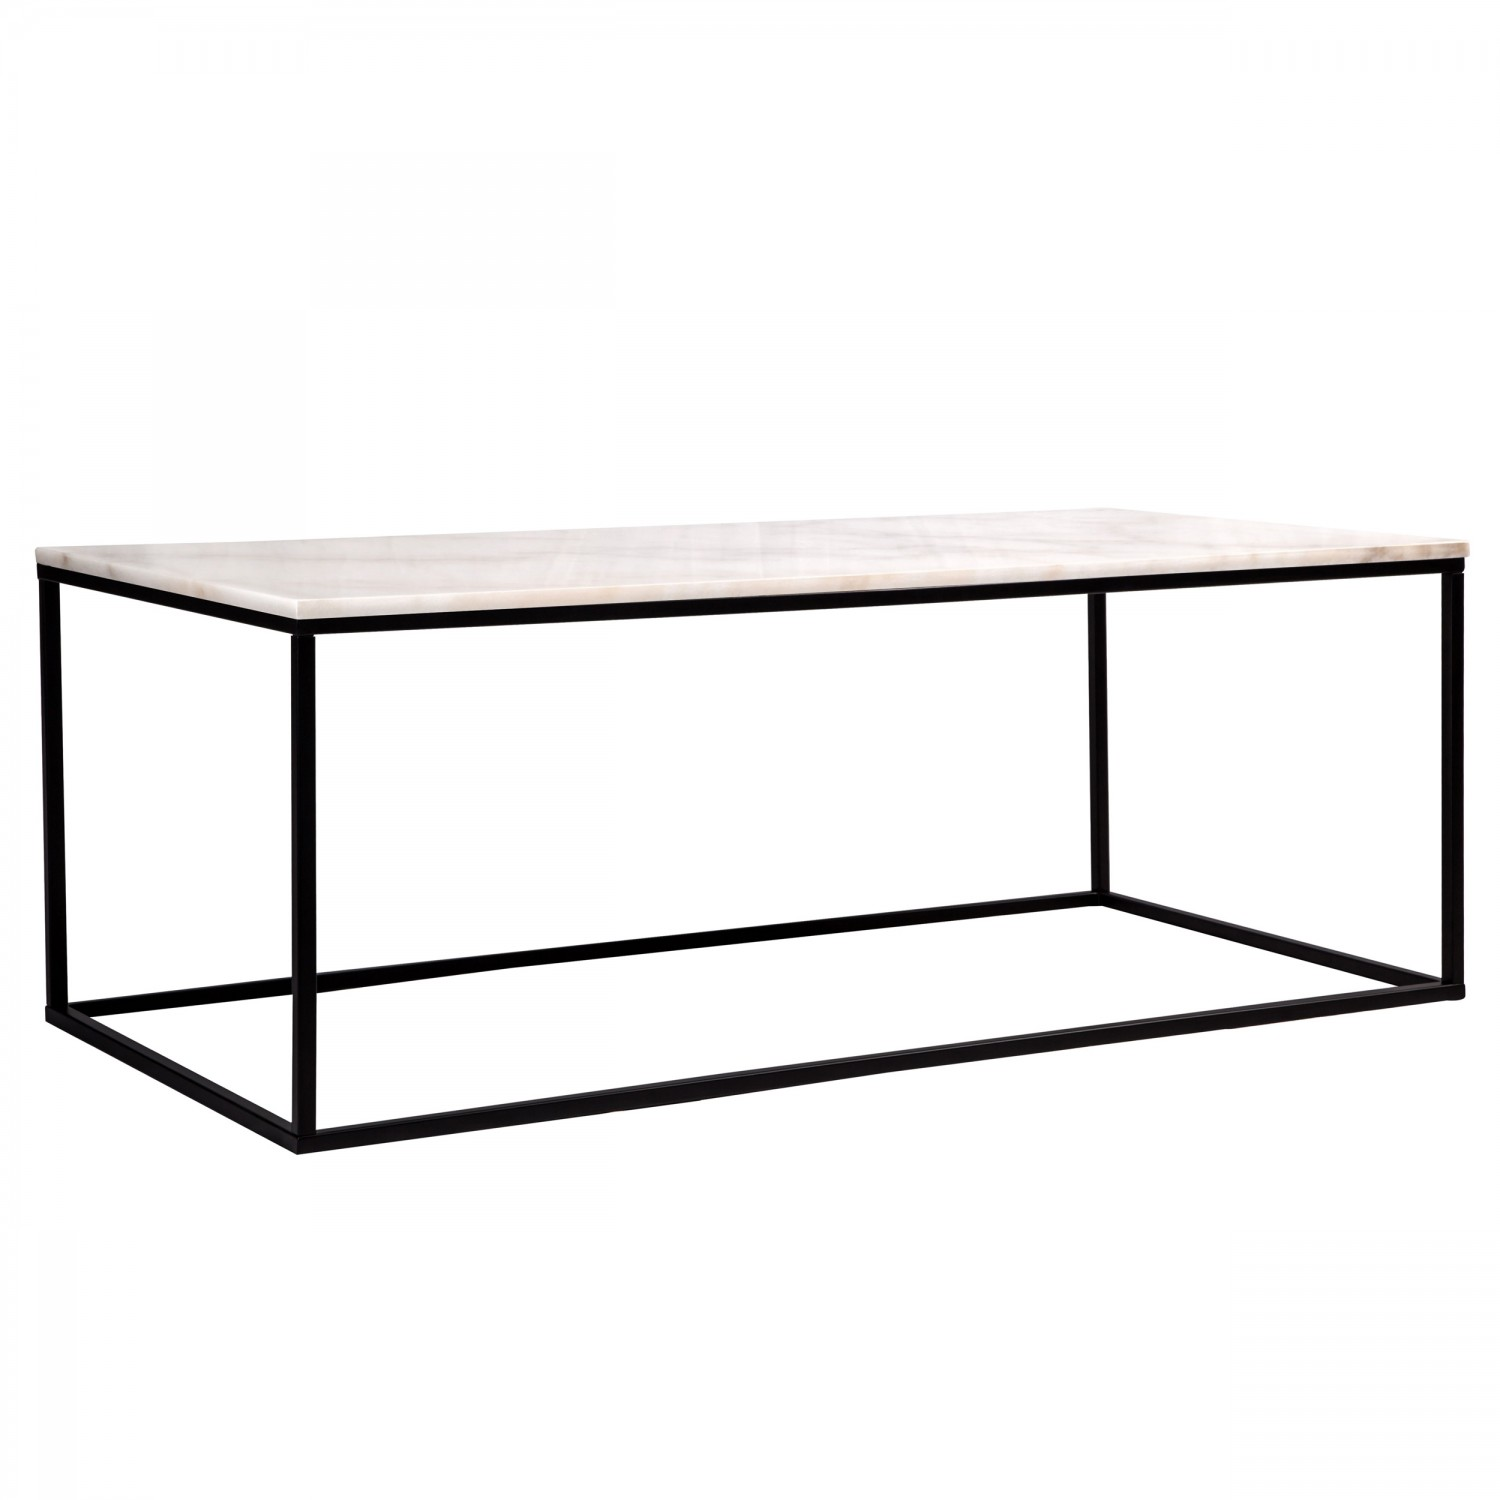 Table Blanche Rectangulaire Table Basse Rectangulaire Lennart Marbre Blanche Koya Design